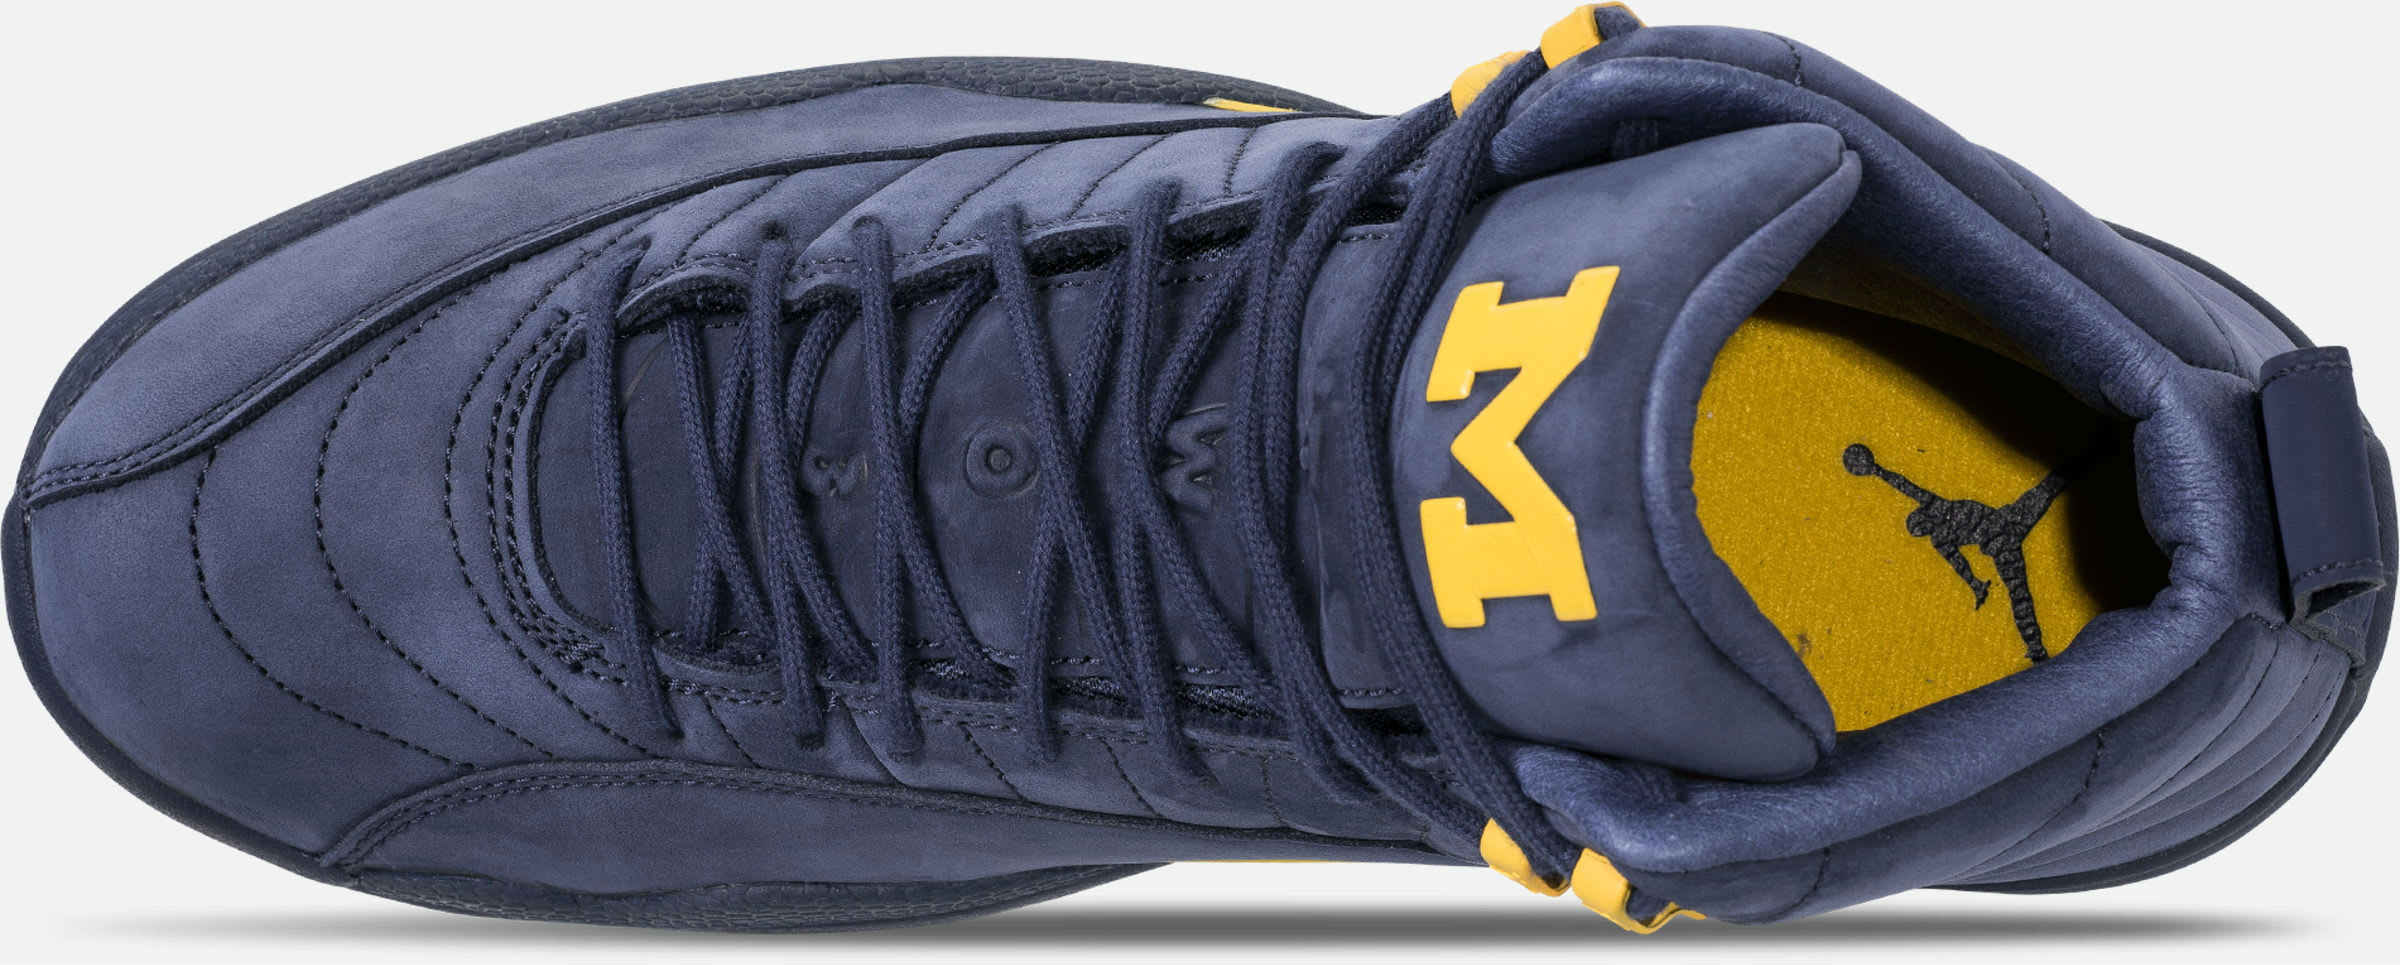 Air Jordan 12 XII Michigan Release Date BQ3180-407 Top